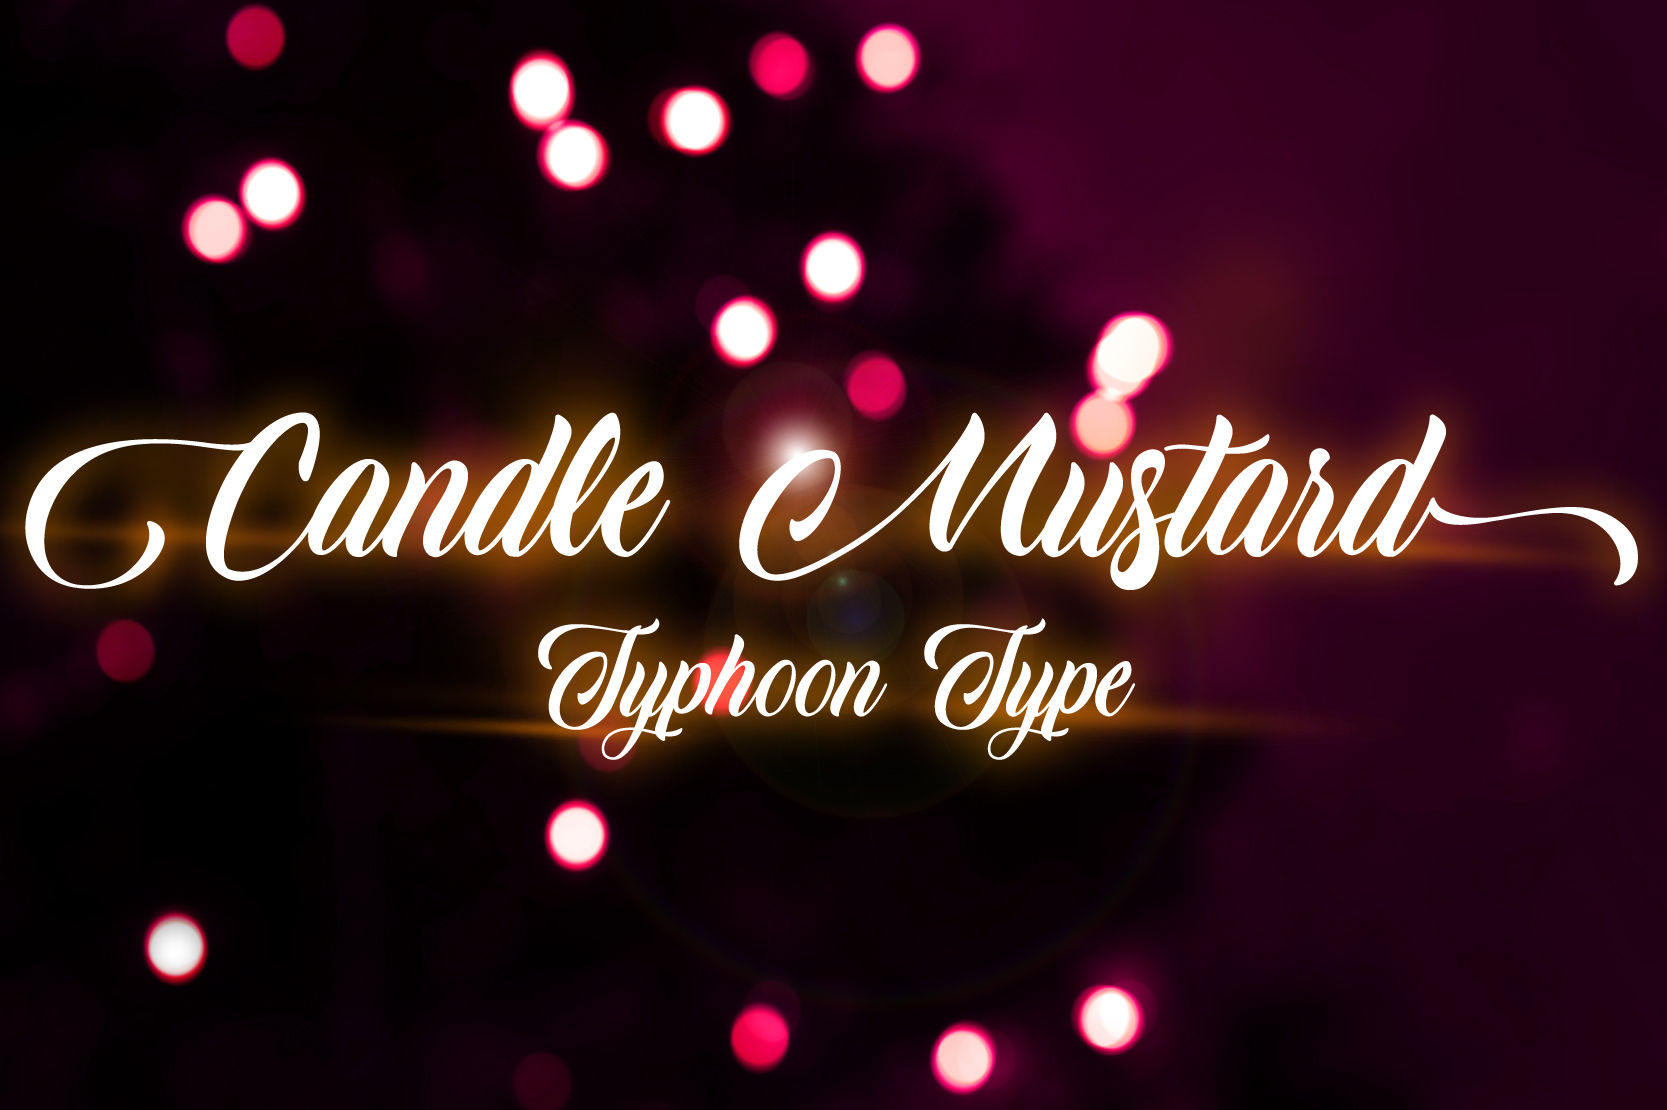 Download Free Candle Mustard Font By Typhoon Type Suthi Srisopha Creative for Cricut Explore, Silhouette and other cutting machines.